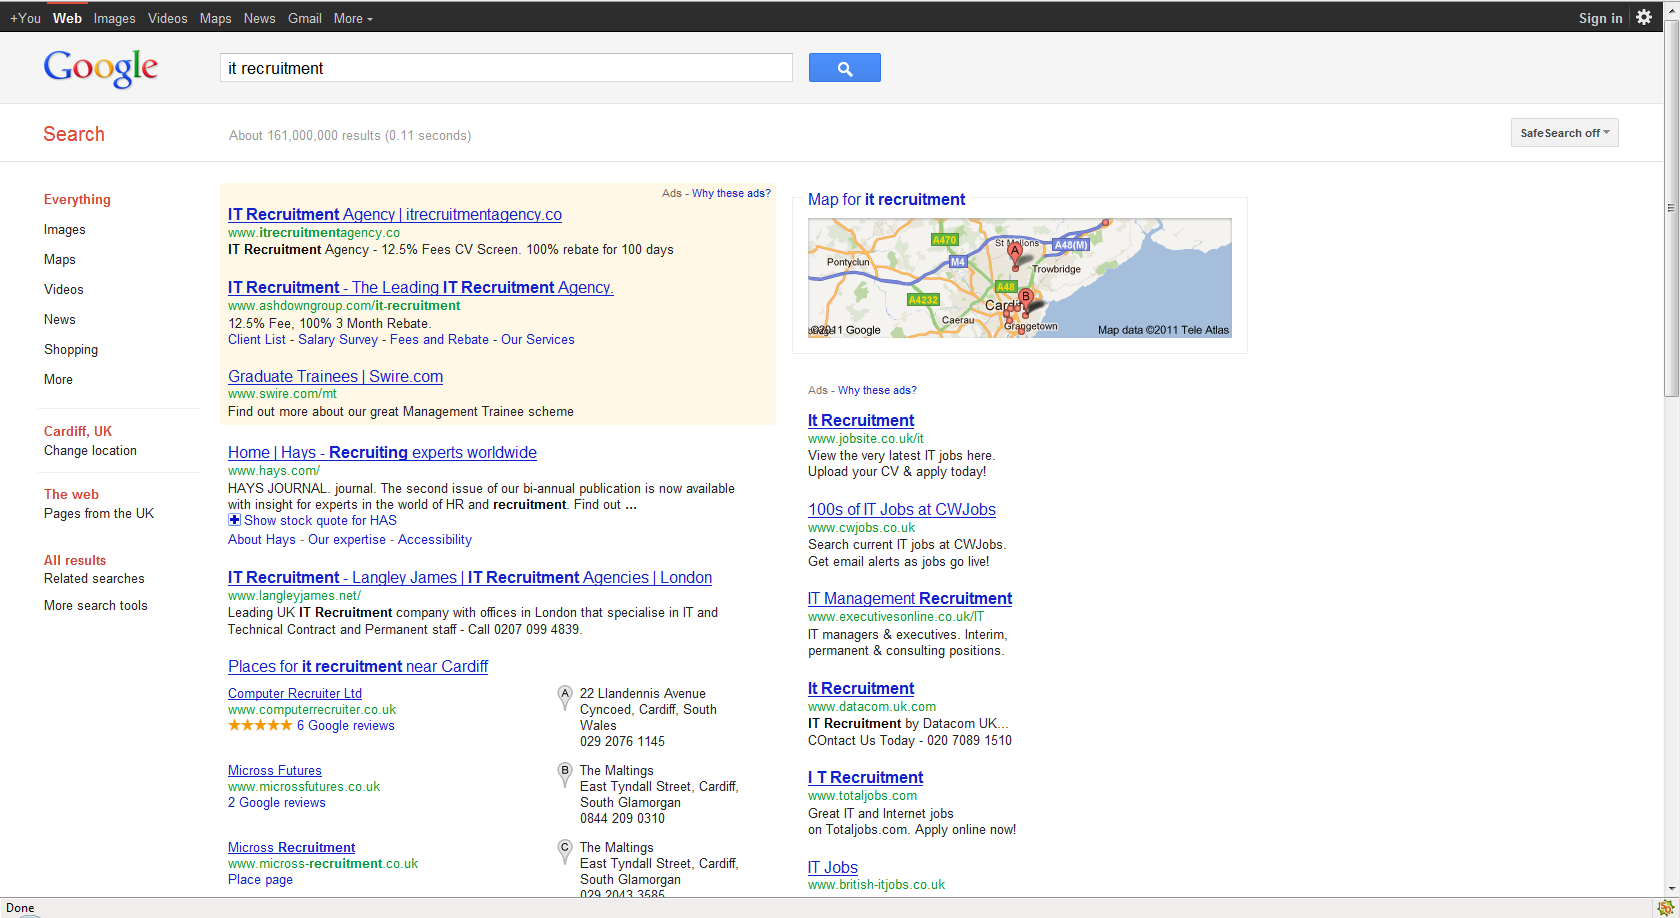 Example of Google Places changes in the SERPs